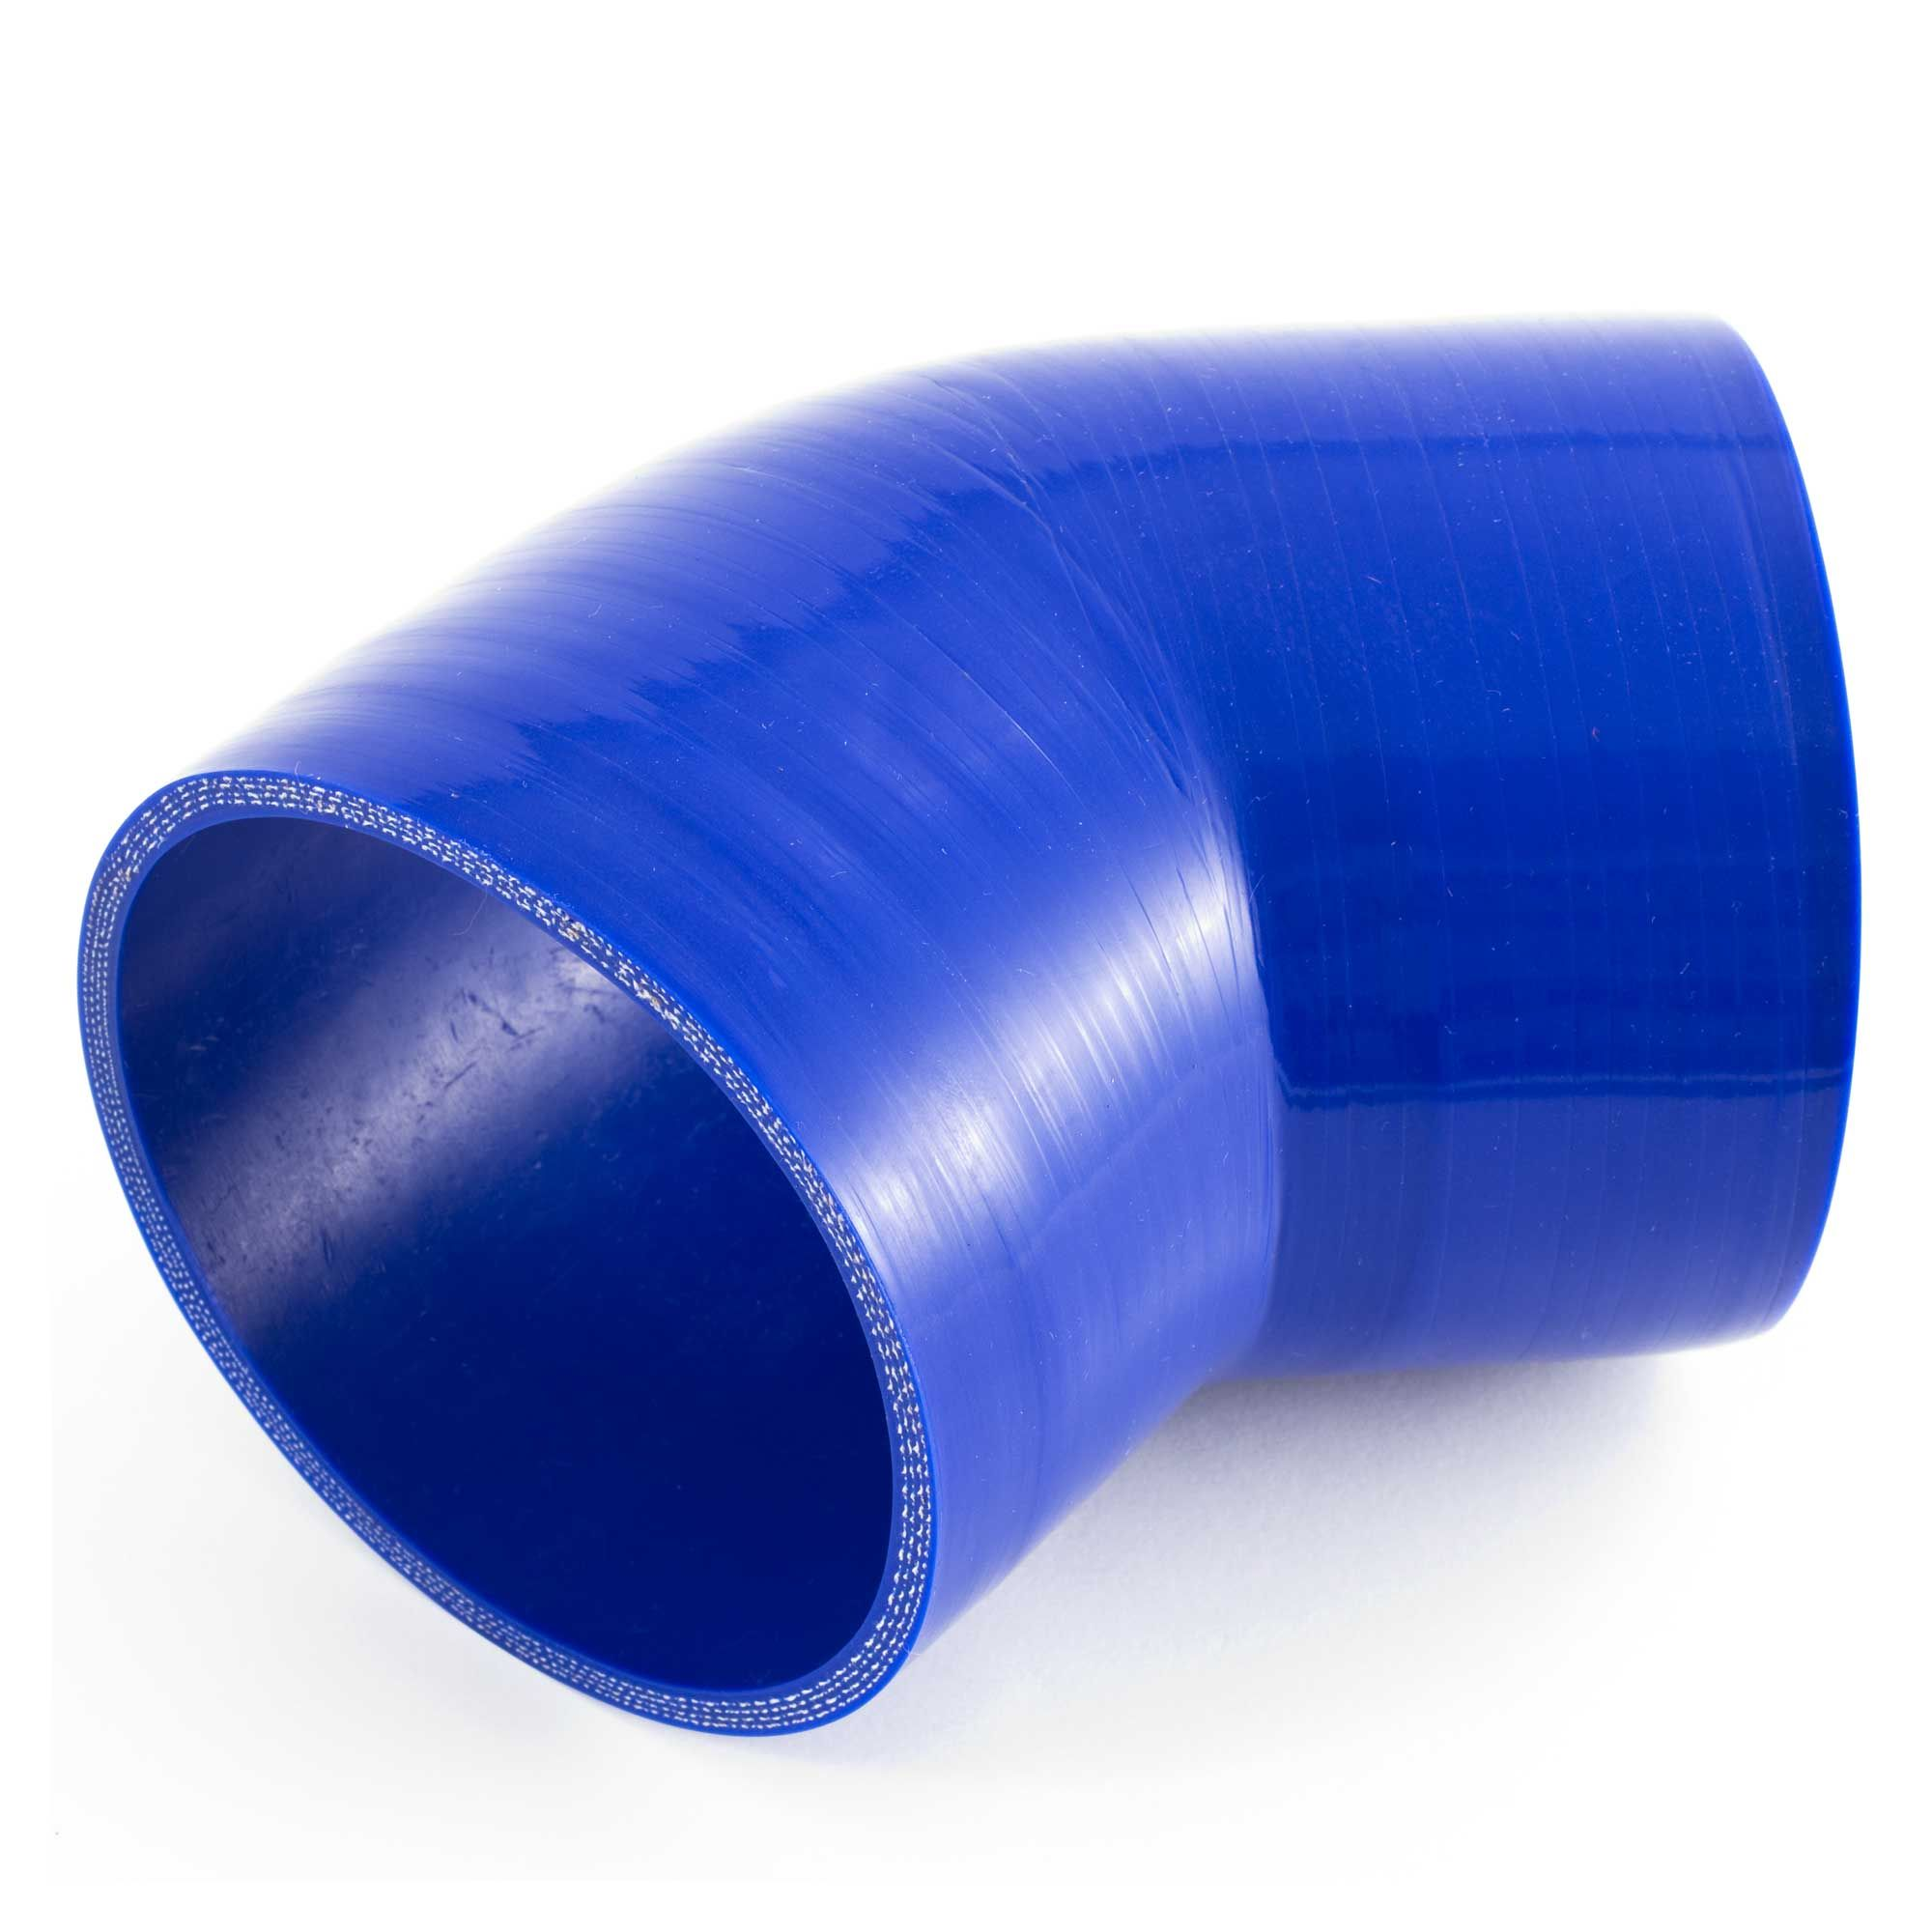 JJC 90 Degree Silicone Hose Elbow Bend 102mm Blue Rubber Coolant Radiator Pipe